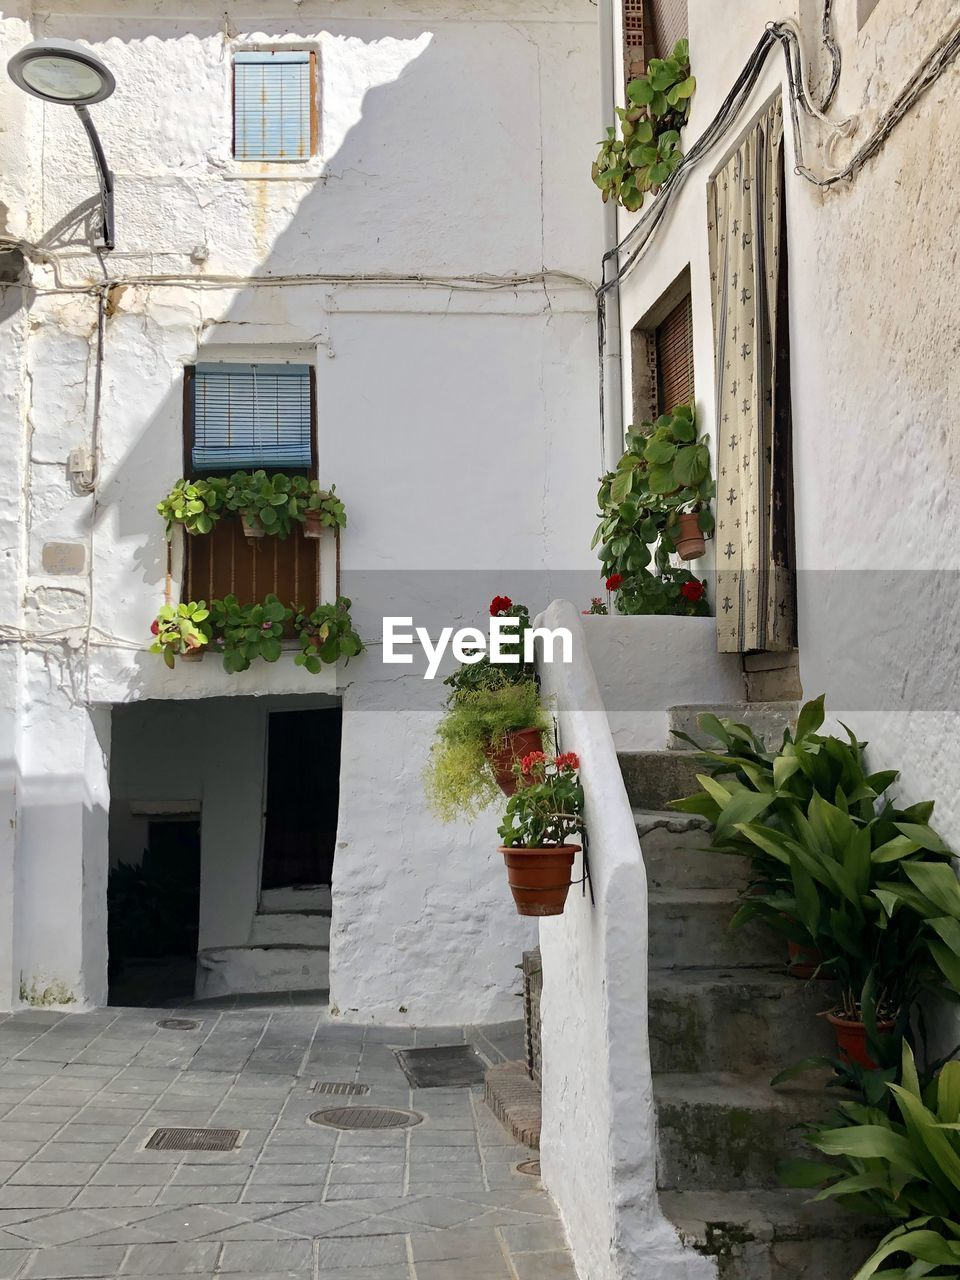 architecture, built structure, building exterior, building, plant, potted plant, growth, flower, flowering plant, nature, residential district, house, no people, day, outdoors, window, white color, flower pot, footpath, city, window box, courtyard